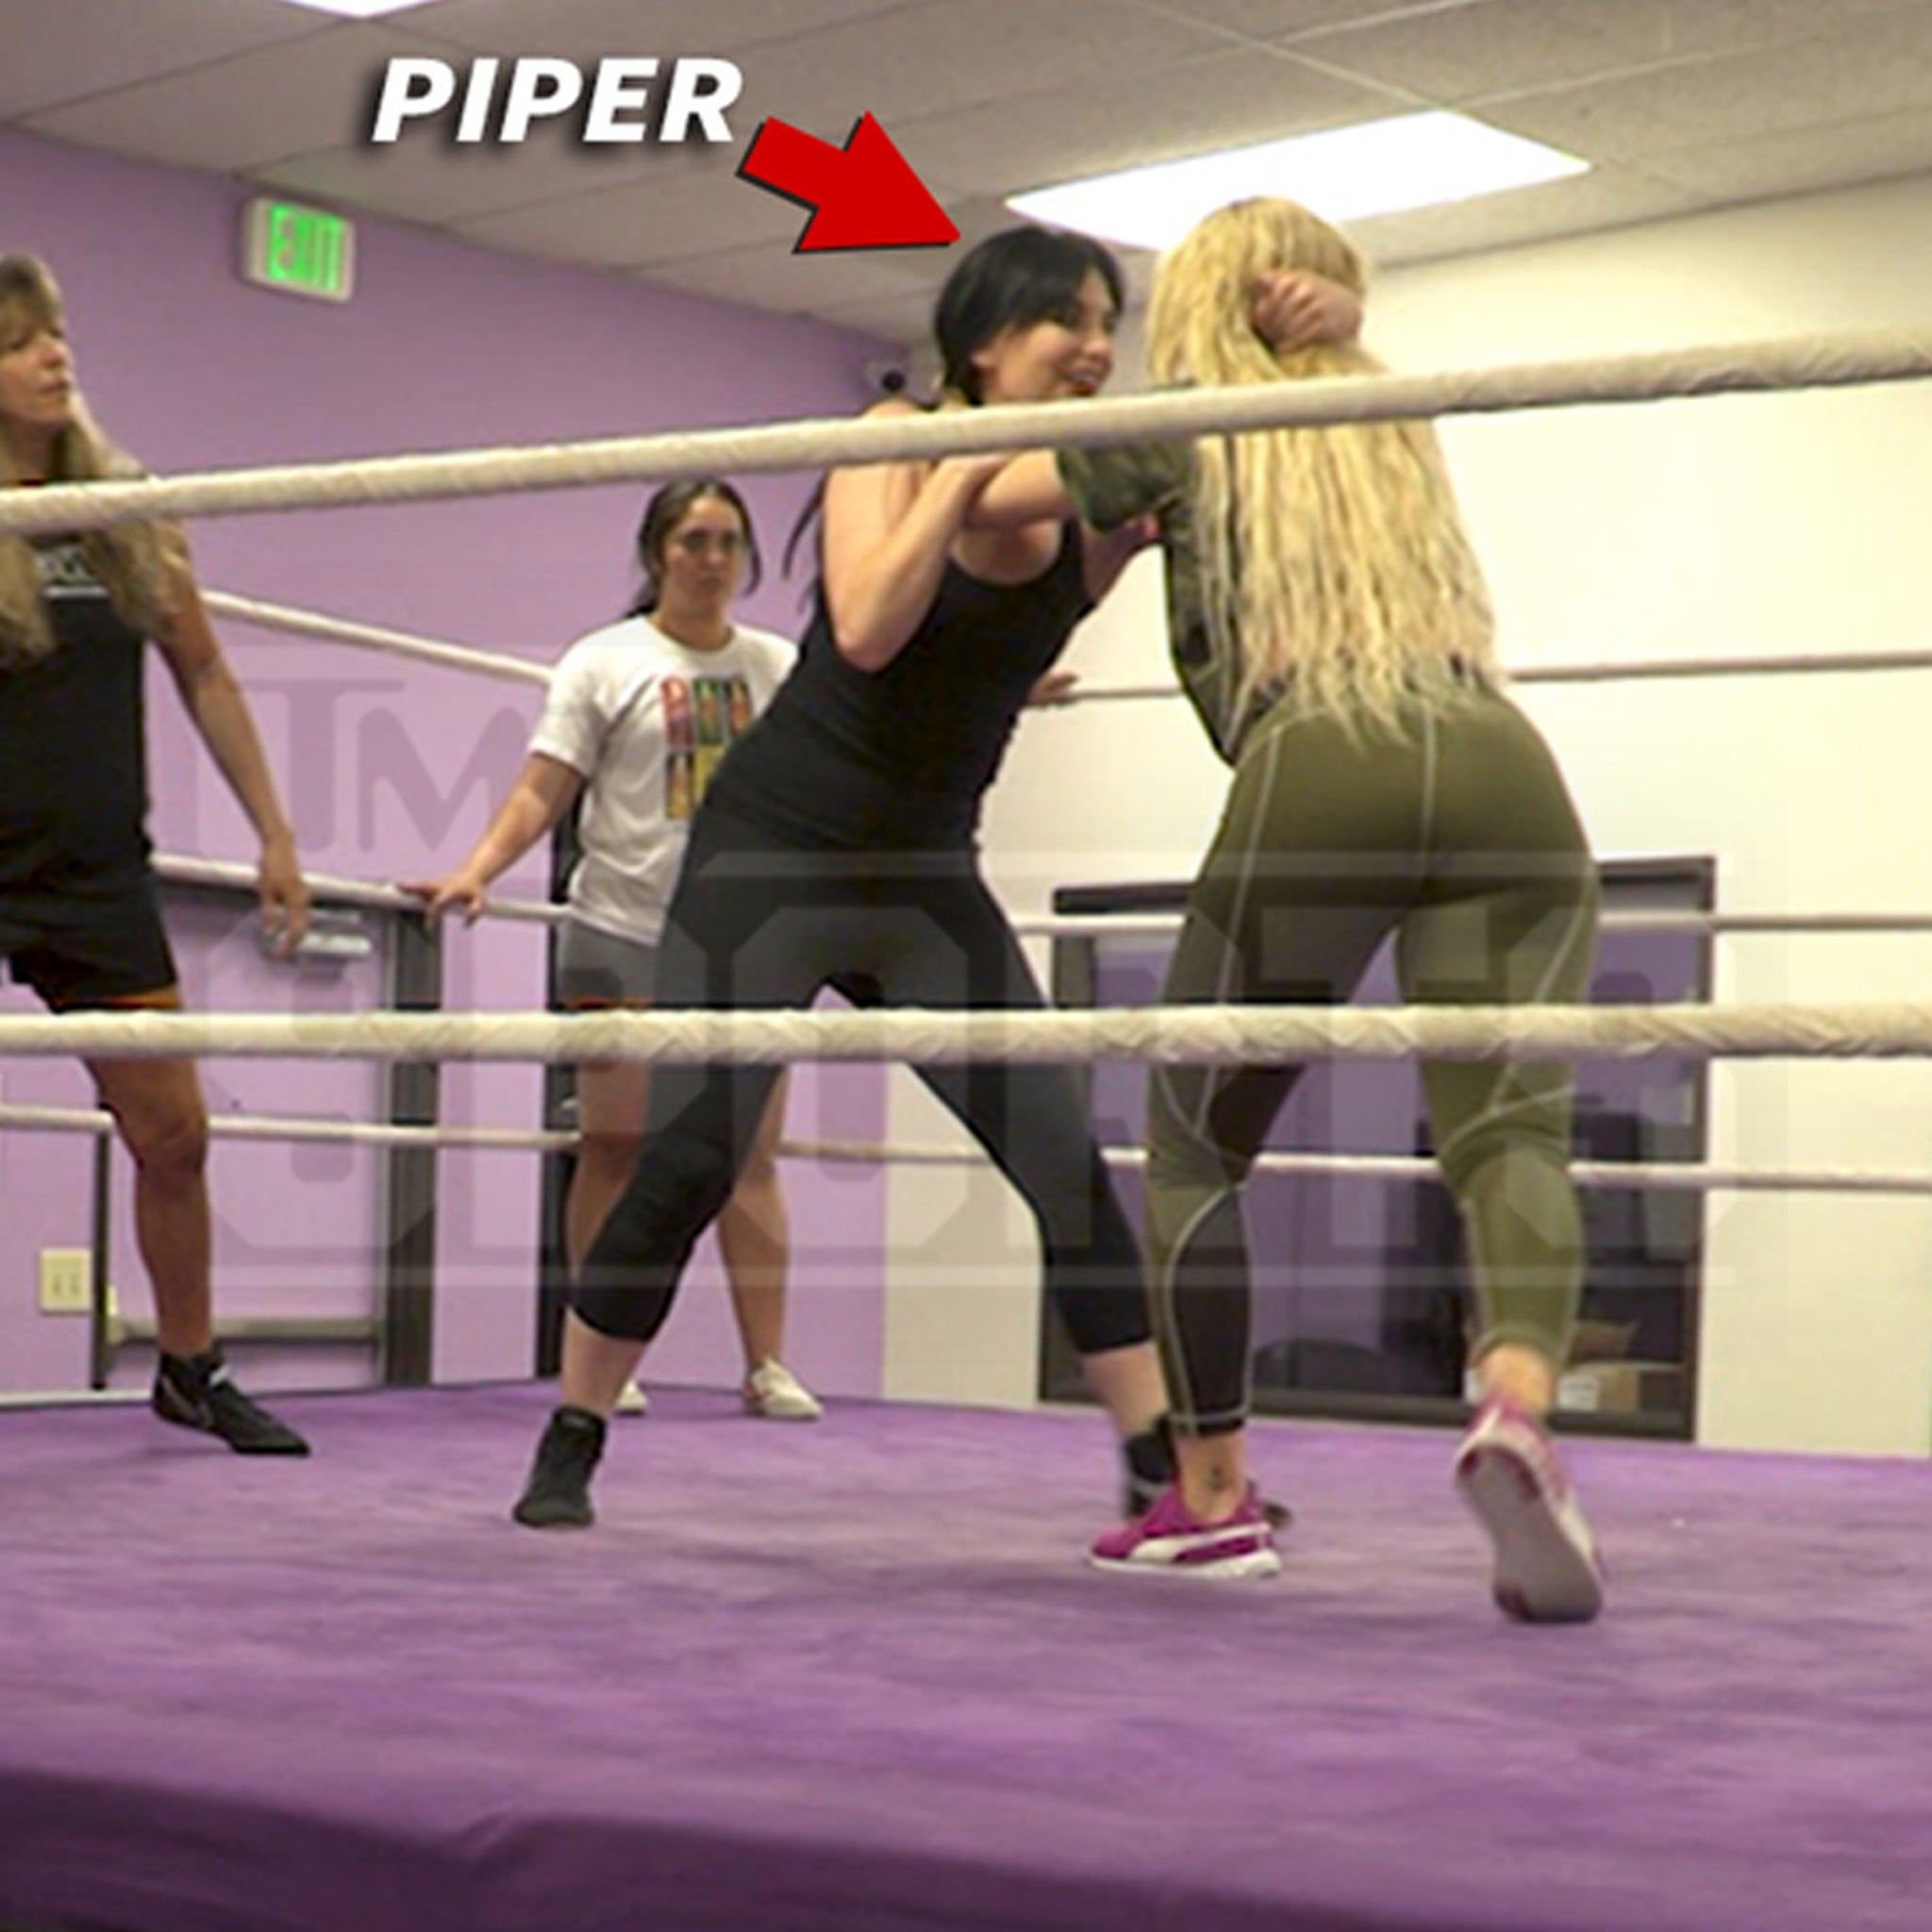 Roddy Piper's Daughter Gets 1st In-Ring Action